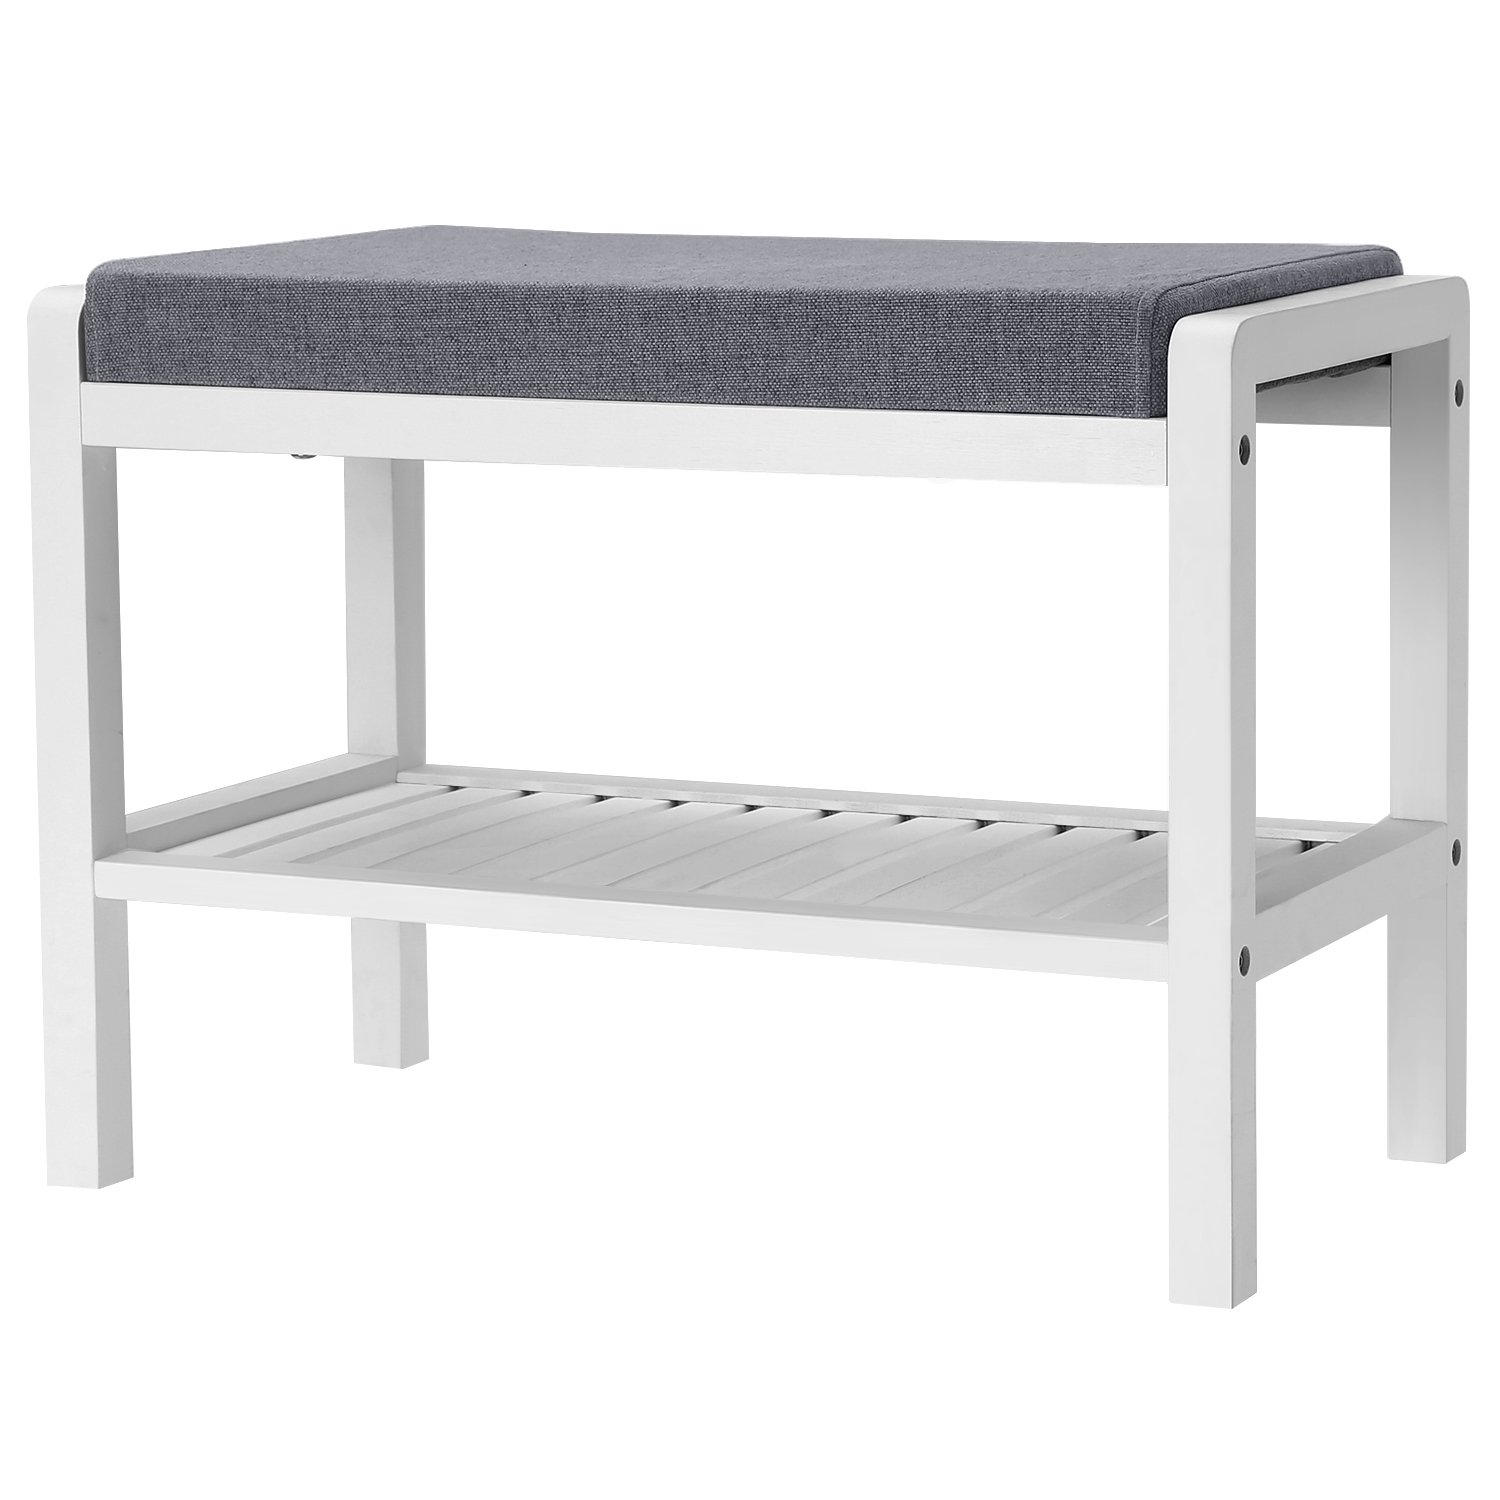 SONGMICS Shoe Rack Bench with Cushion Upholstered Padded Seat, Storage Shelf, Shoe Organizer, Holds Up to 350 Lb, Ideal for Entryway Bedroom Living Room Hallway Garage Mud Room White ULBS65WN by SONGMICS